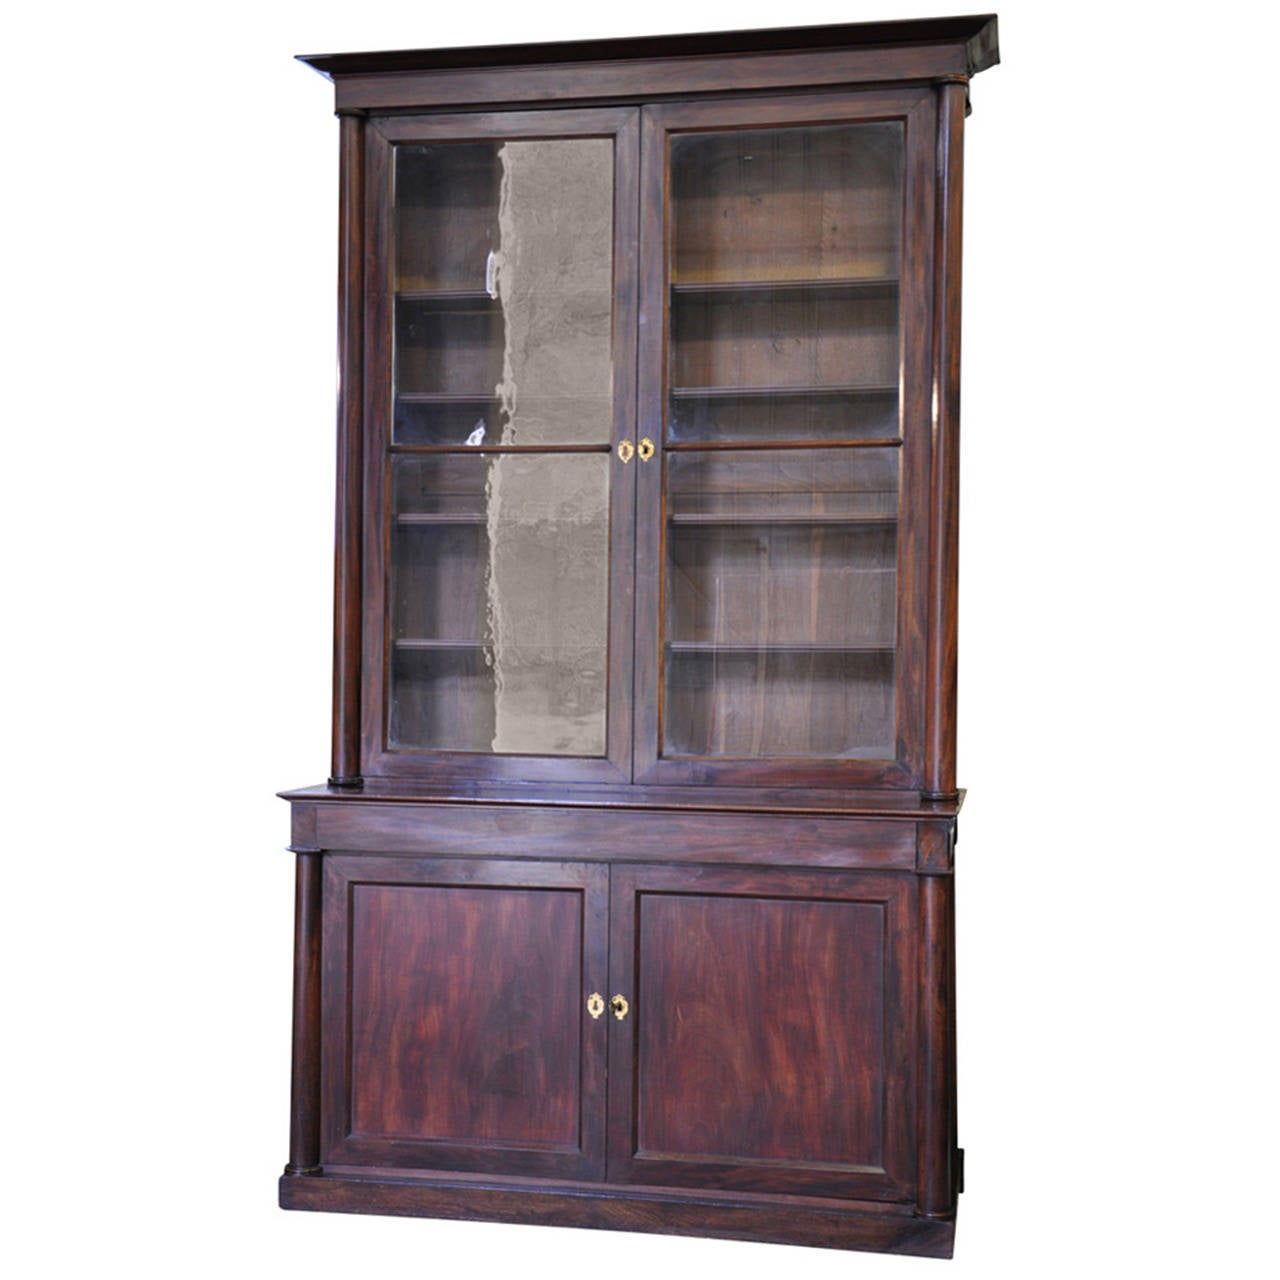 french period empire glass fronted bookcase at 1stdibs. Black Bedroom Furniture Sets. Home Design Ideas